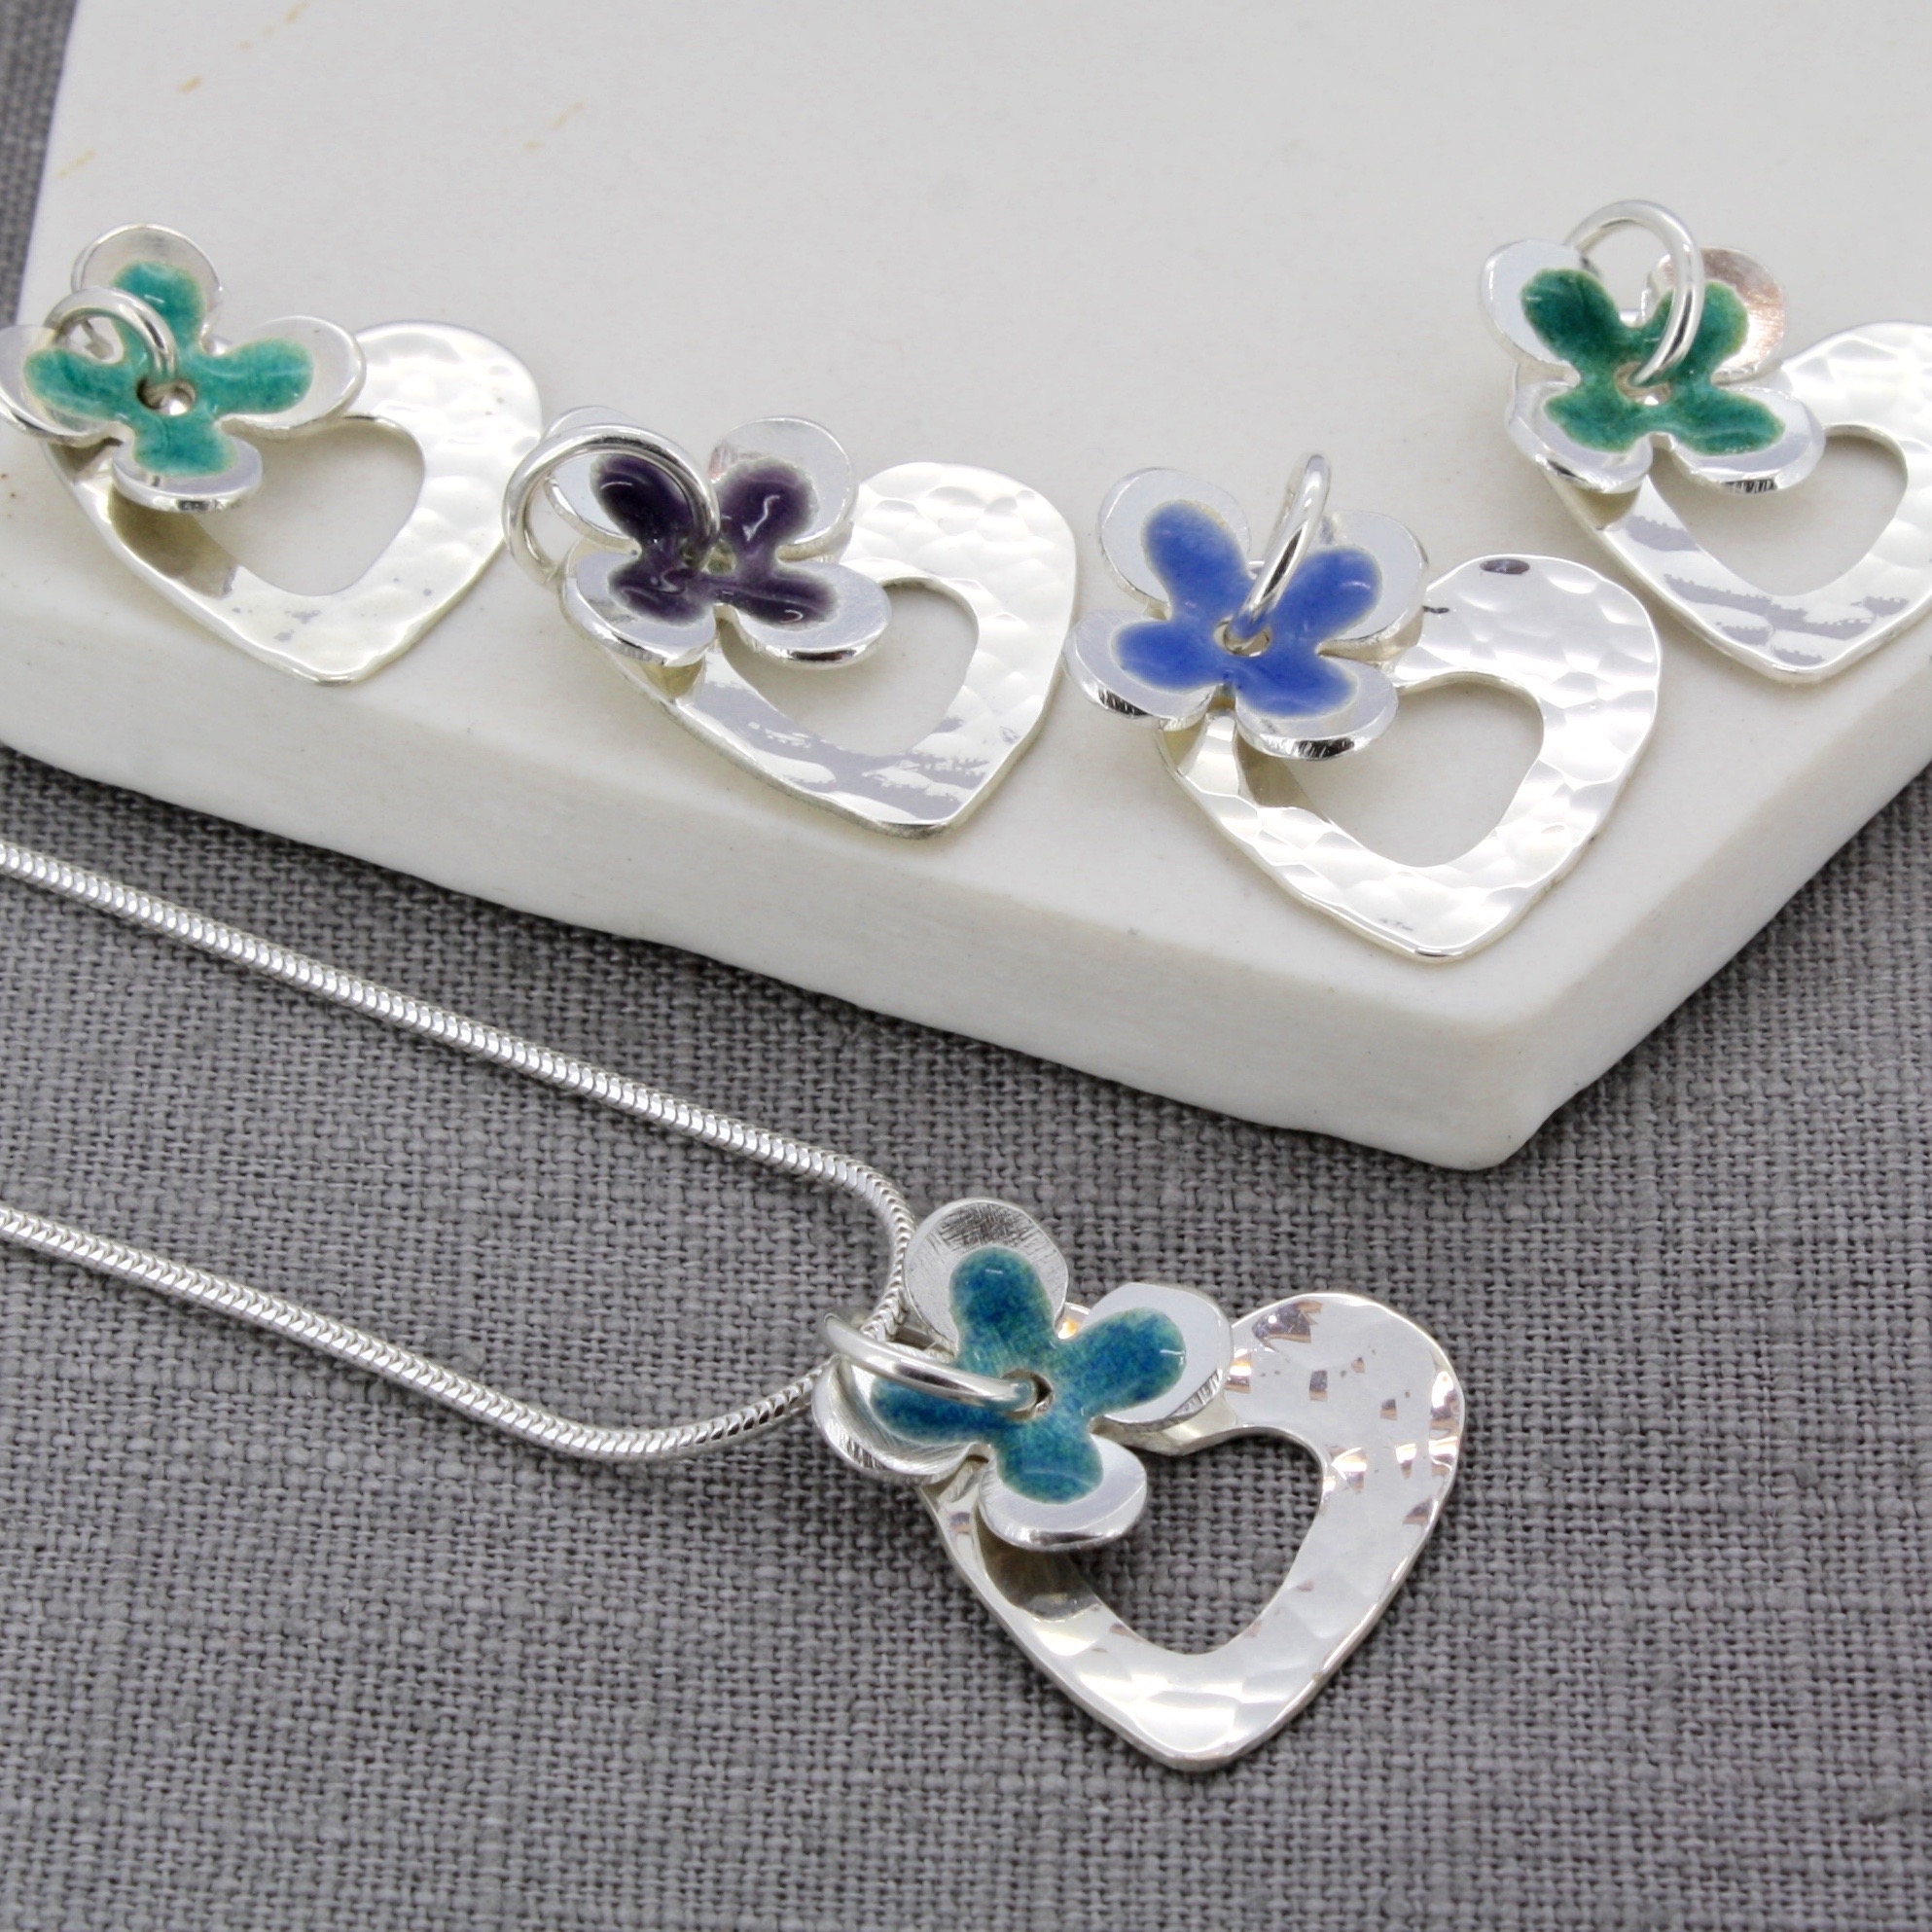 Personalised enamel daisy and hammered heart pendants